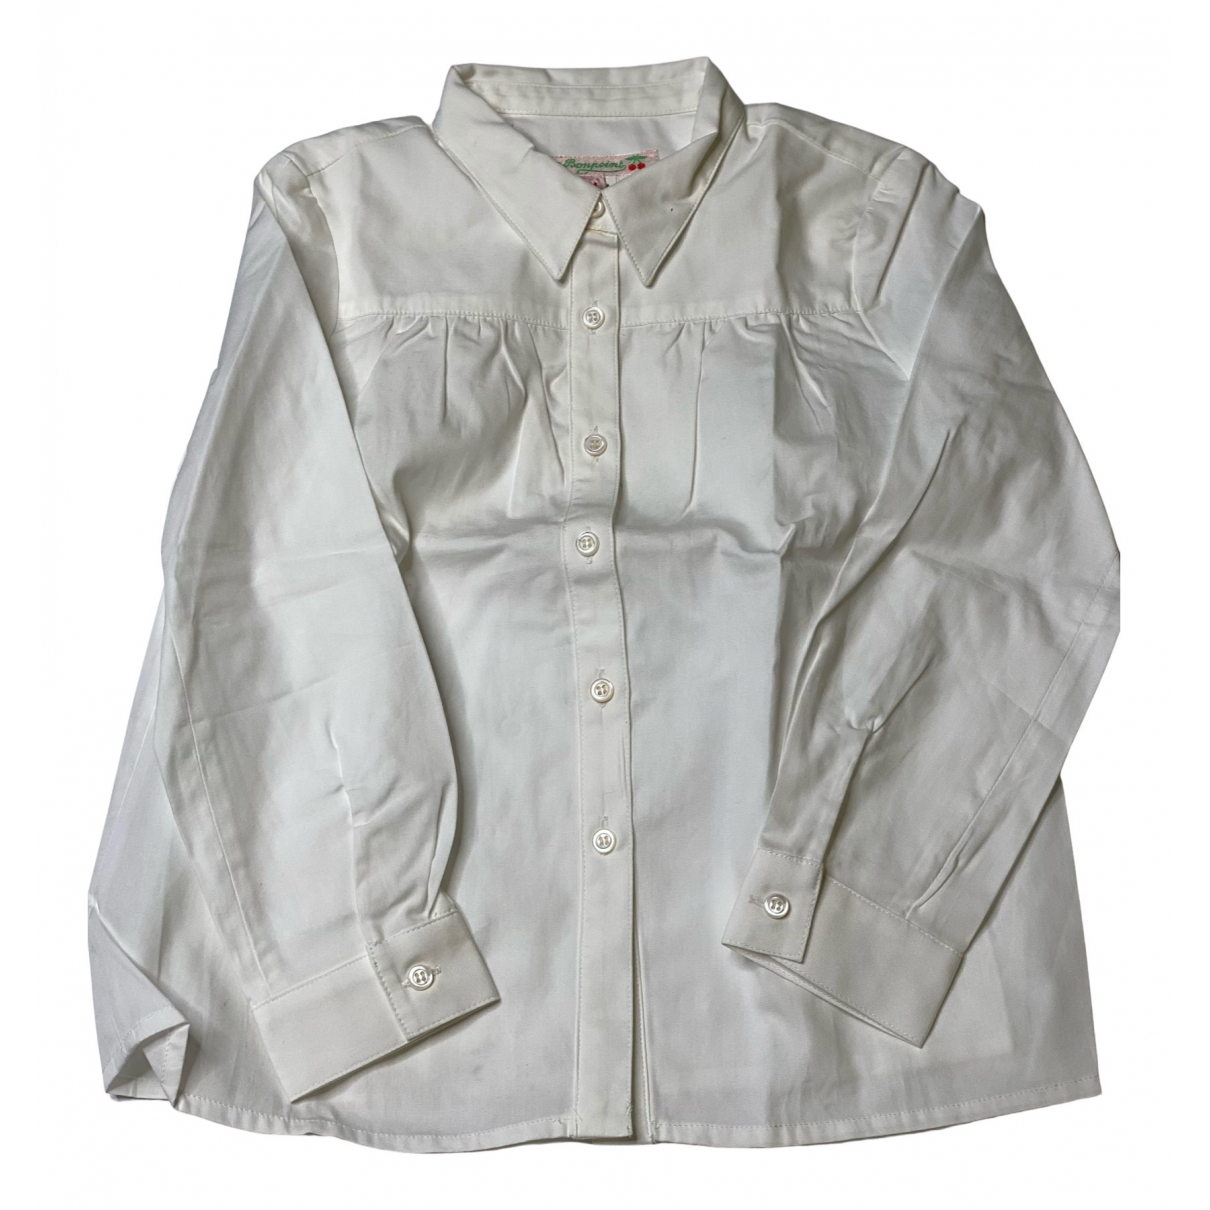 Bonpoint N White Cotton  top for Kids 4 years - until 40 inches UK